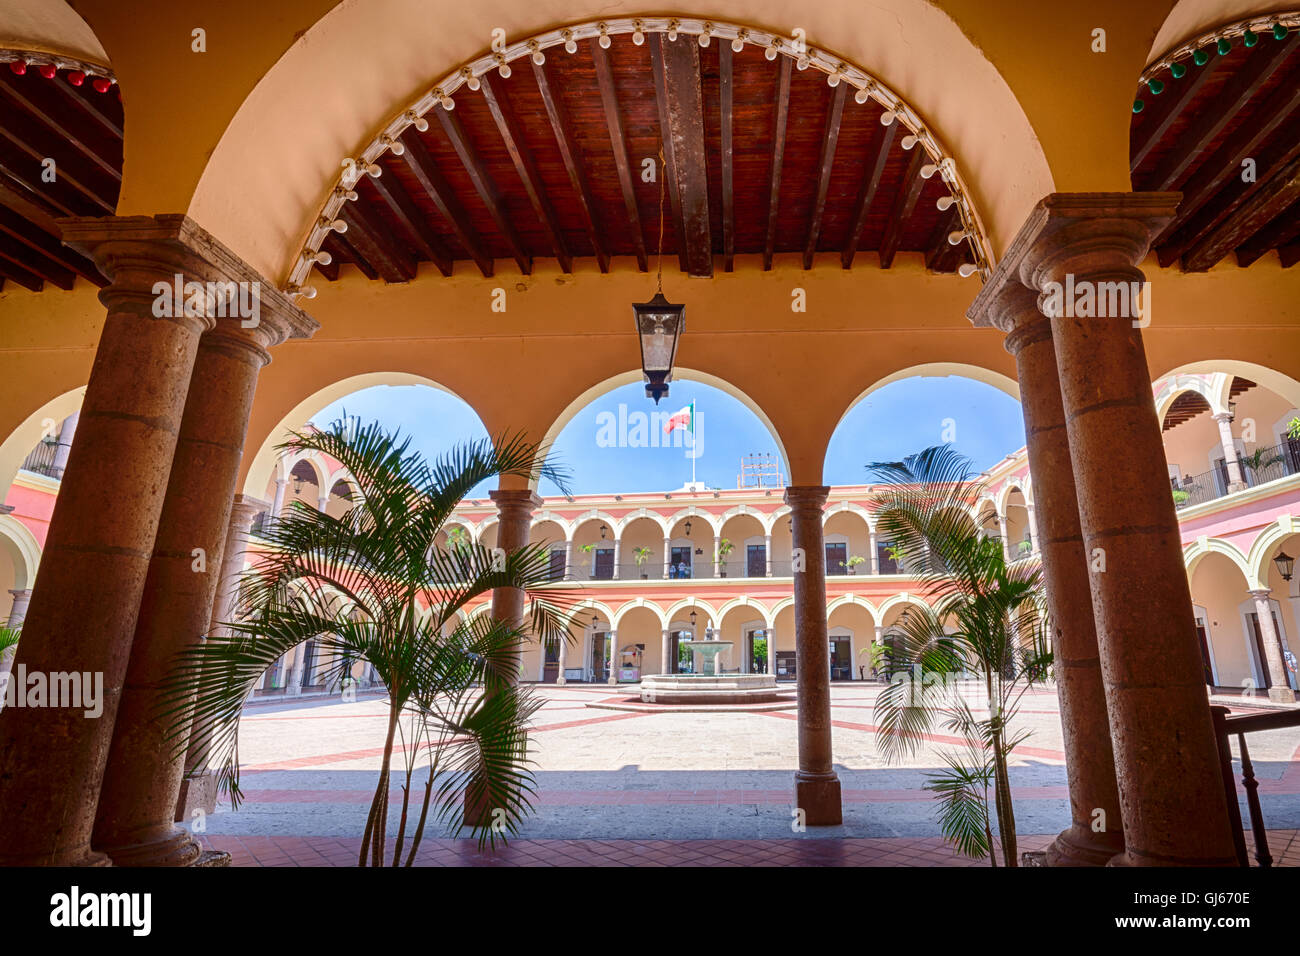 The colonial government palace of El Fuerte, Sinaloa, Mexico. - Stock Image